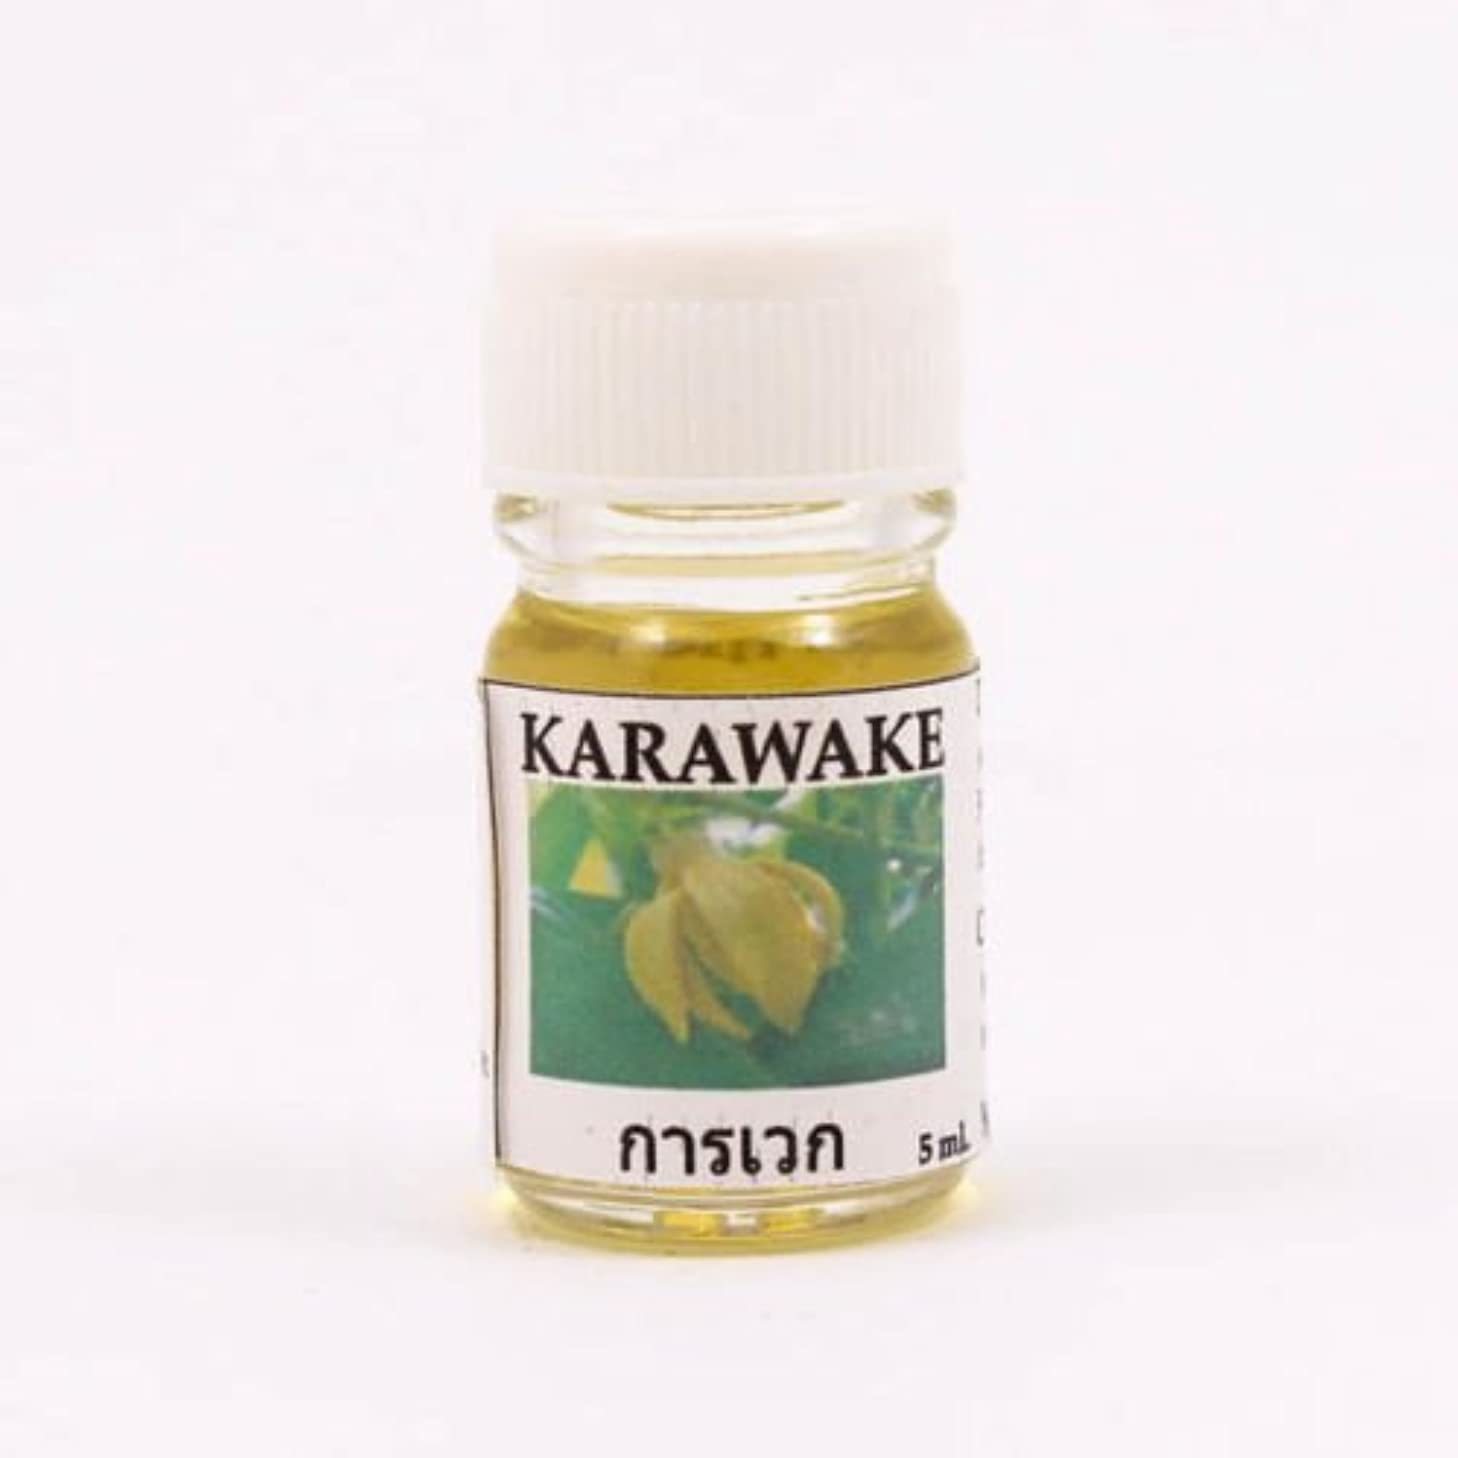 順応性乗り出すタイトル6X Karawake Aroma Fragrance Essential Oil 5ML. cc Diffuser Burner Therapy